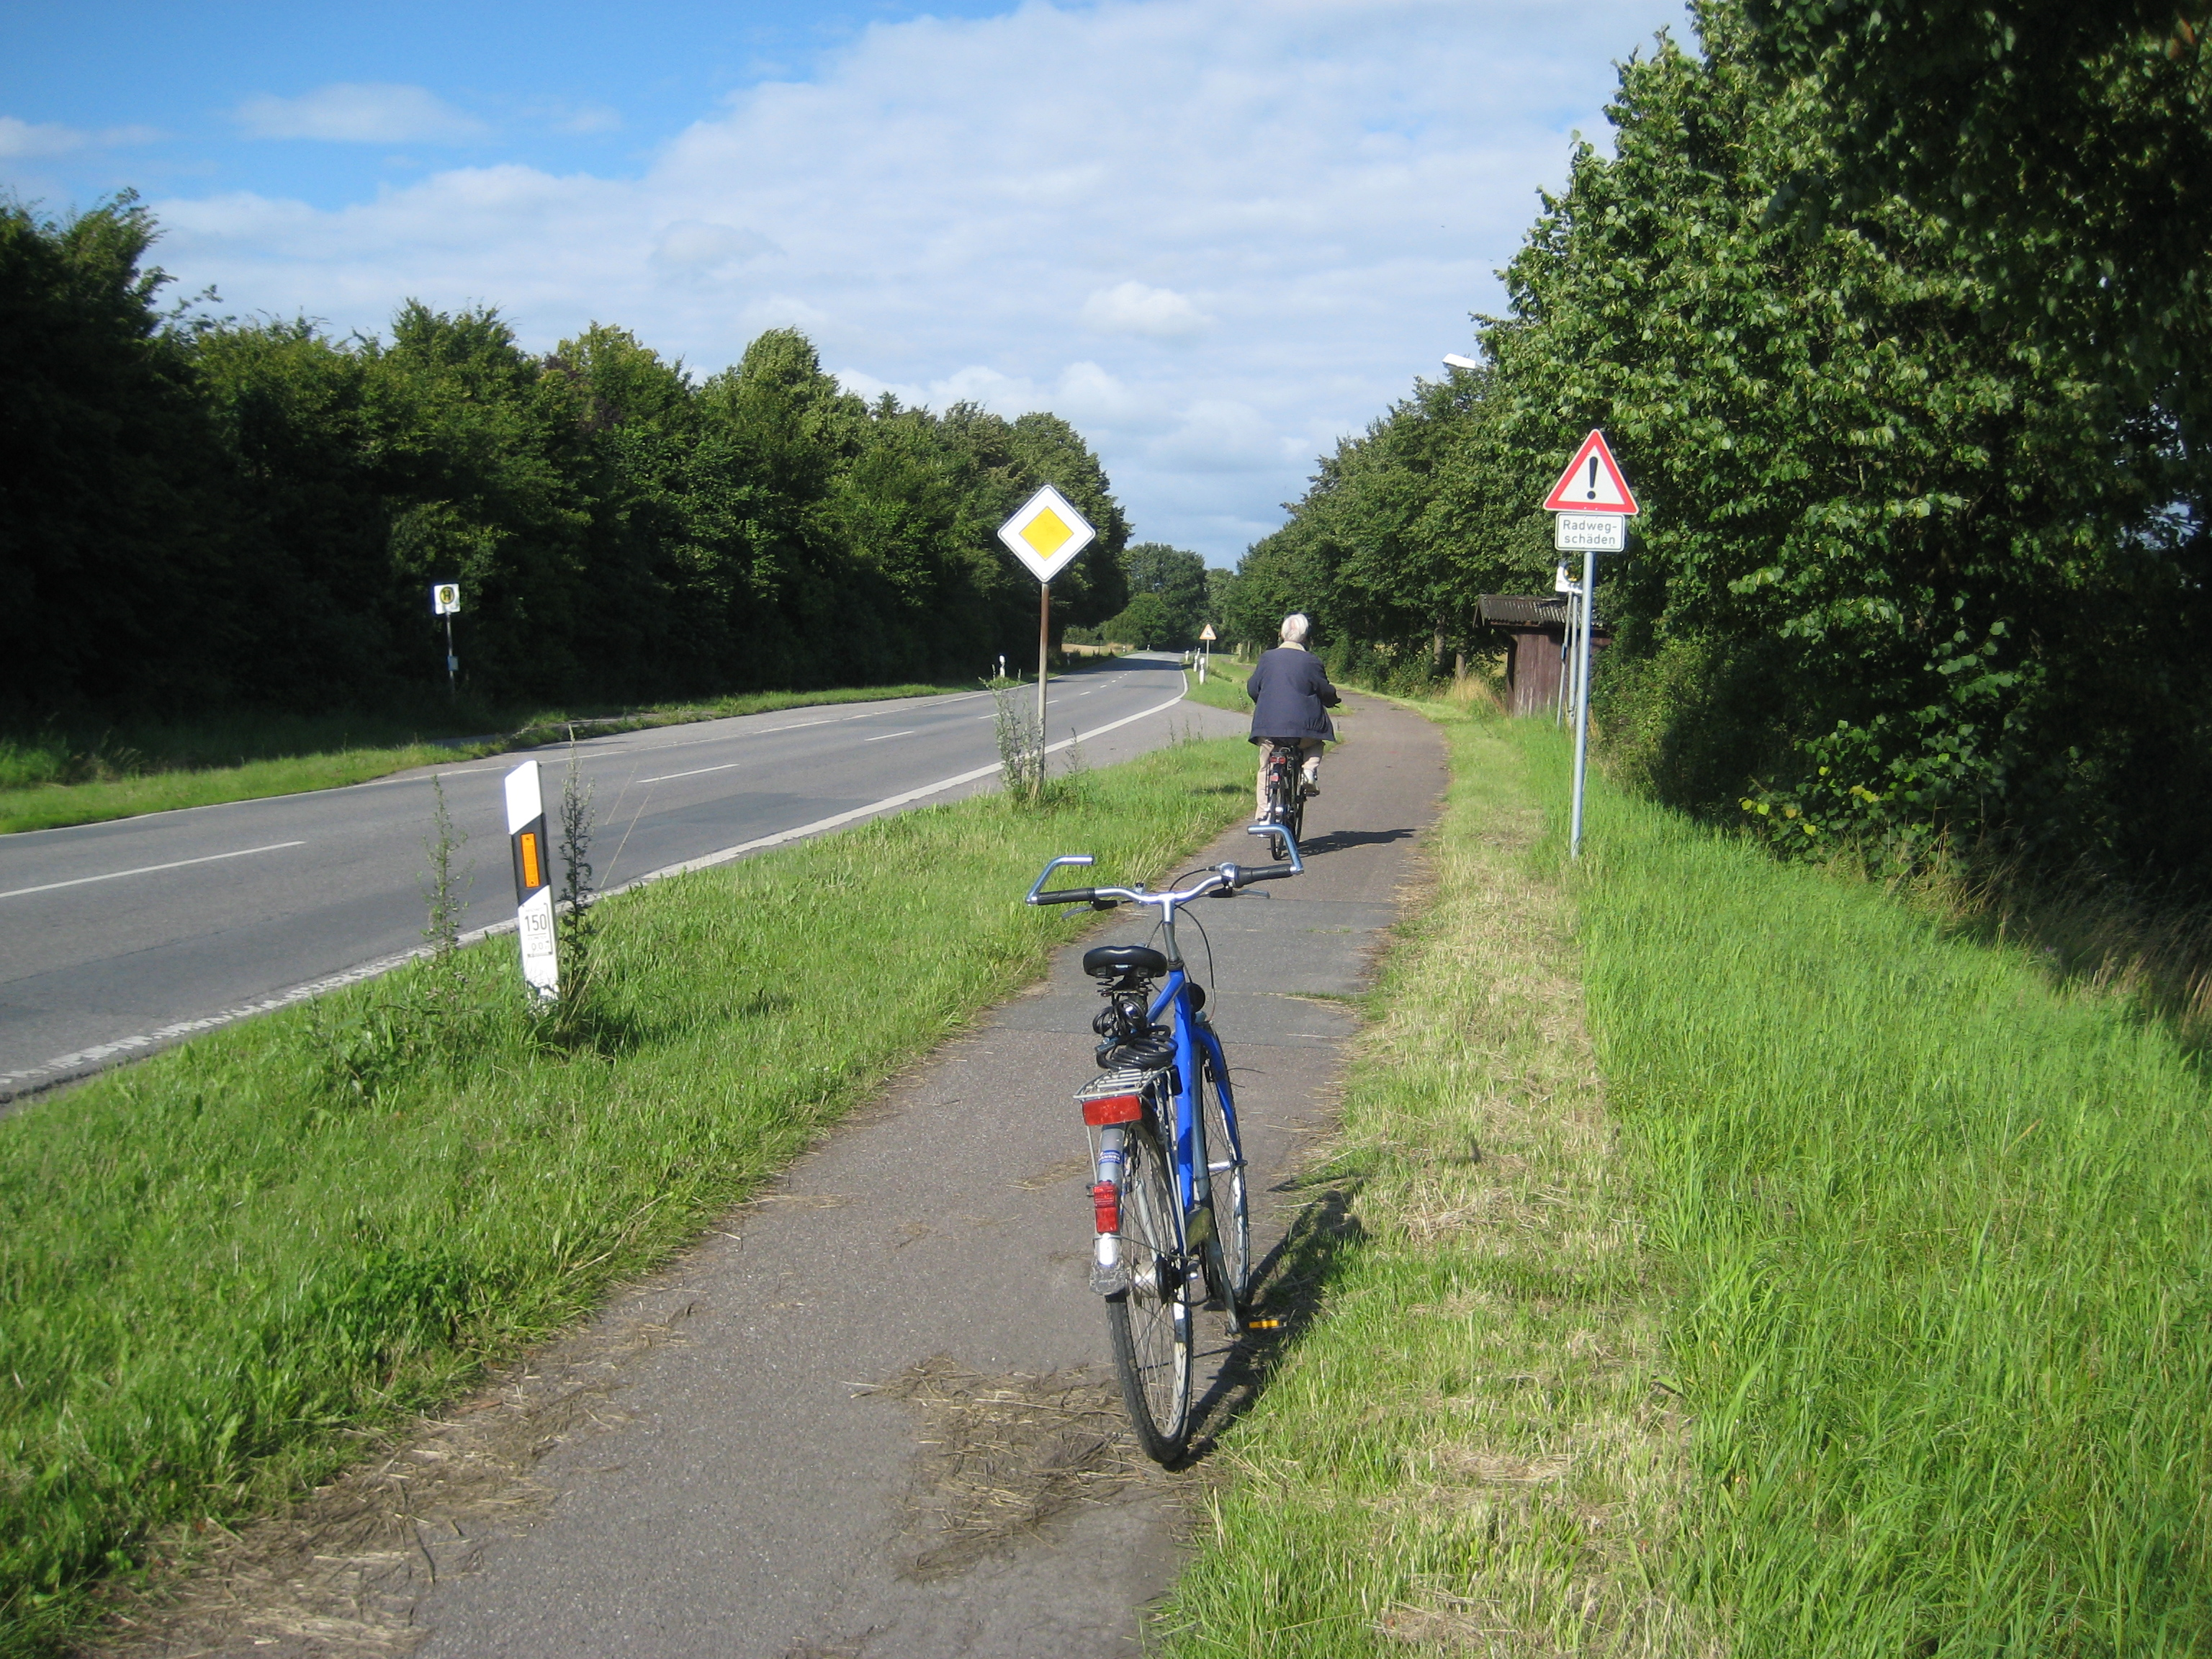 Damaged Cycleway in Germany